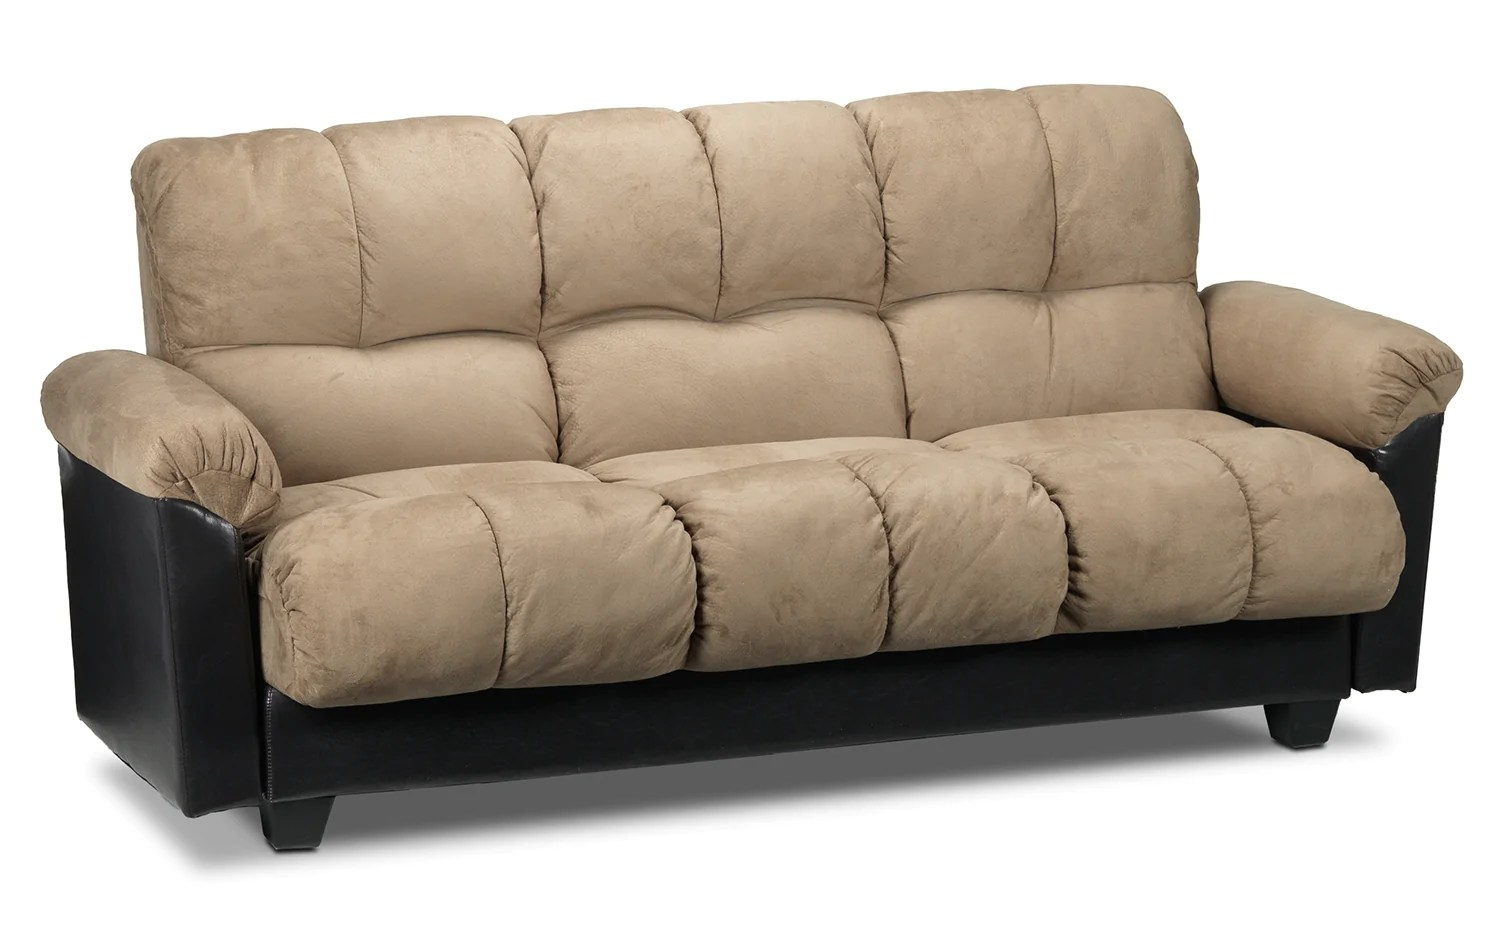 klik klak sofa reviews sectional sofas near me langon bed taupe leon s recently viewed items